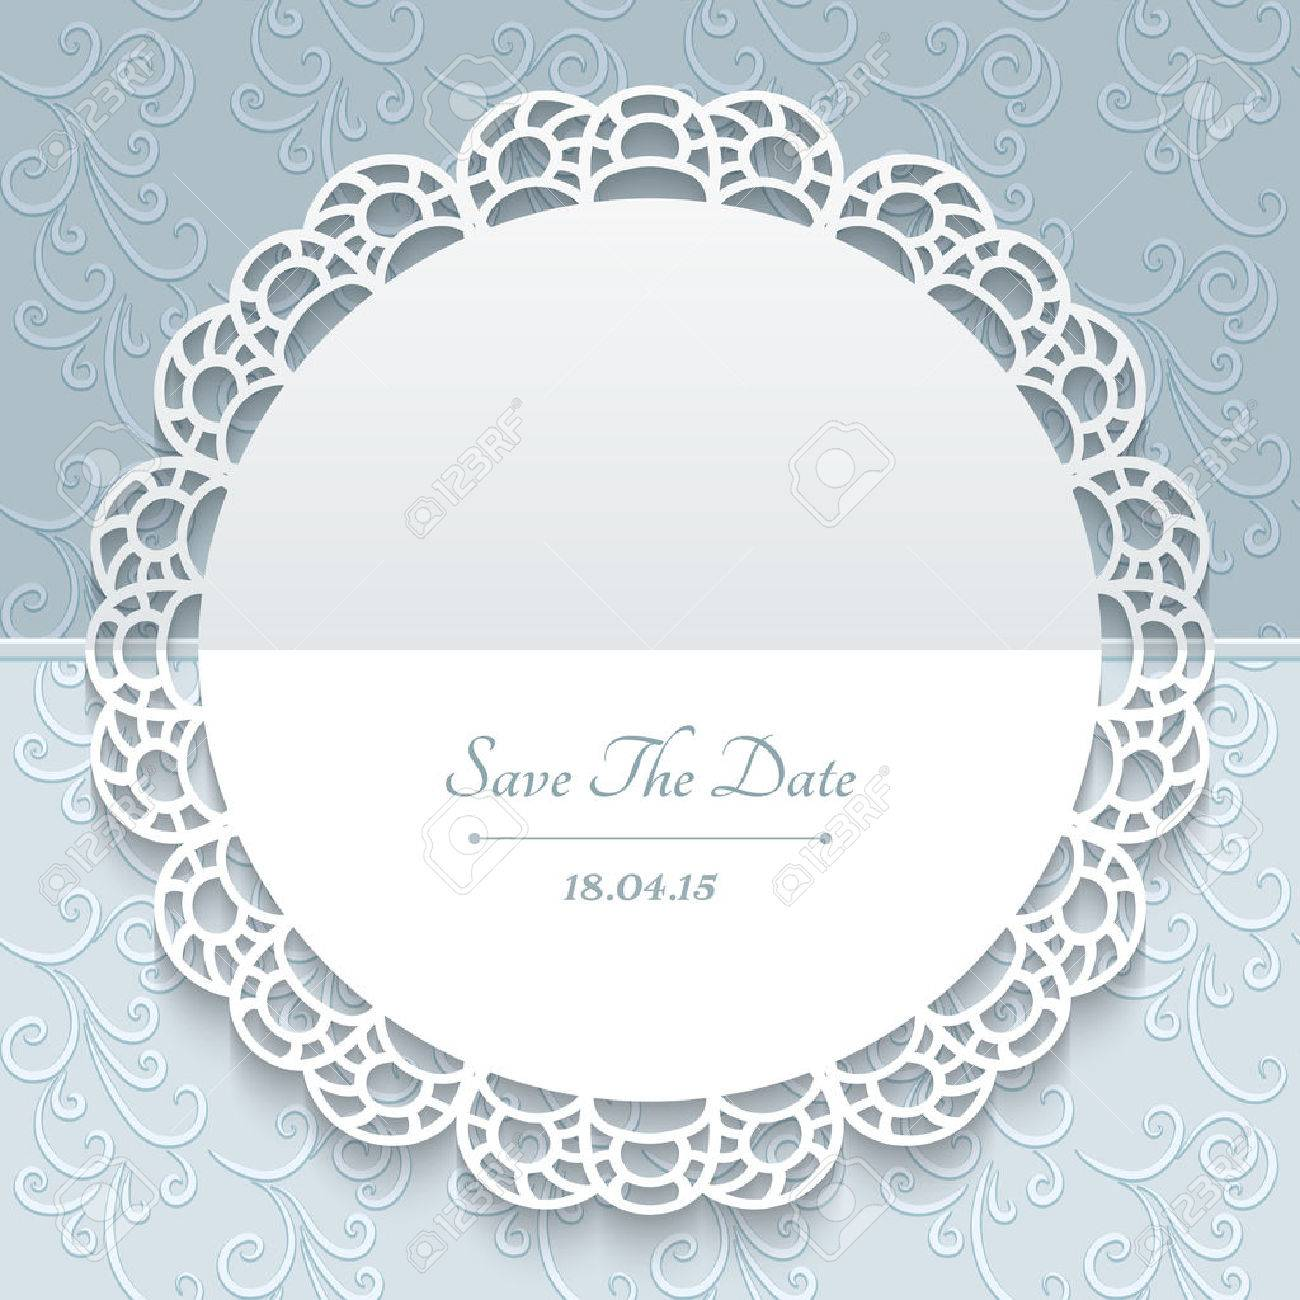 Greeting Or Save The Date Card Wedding Invitation Lace Doily